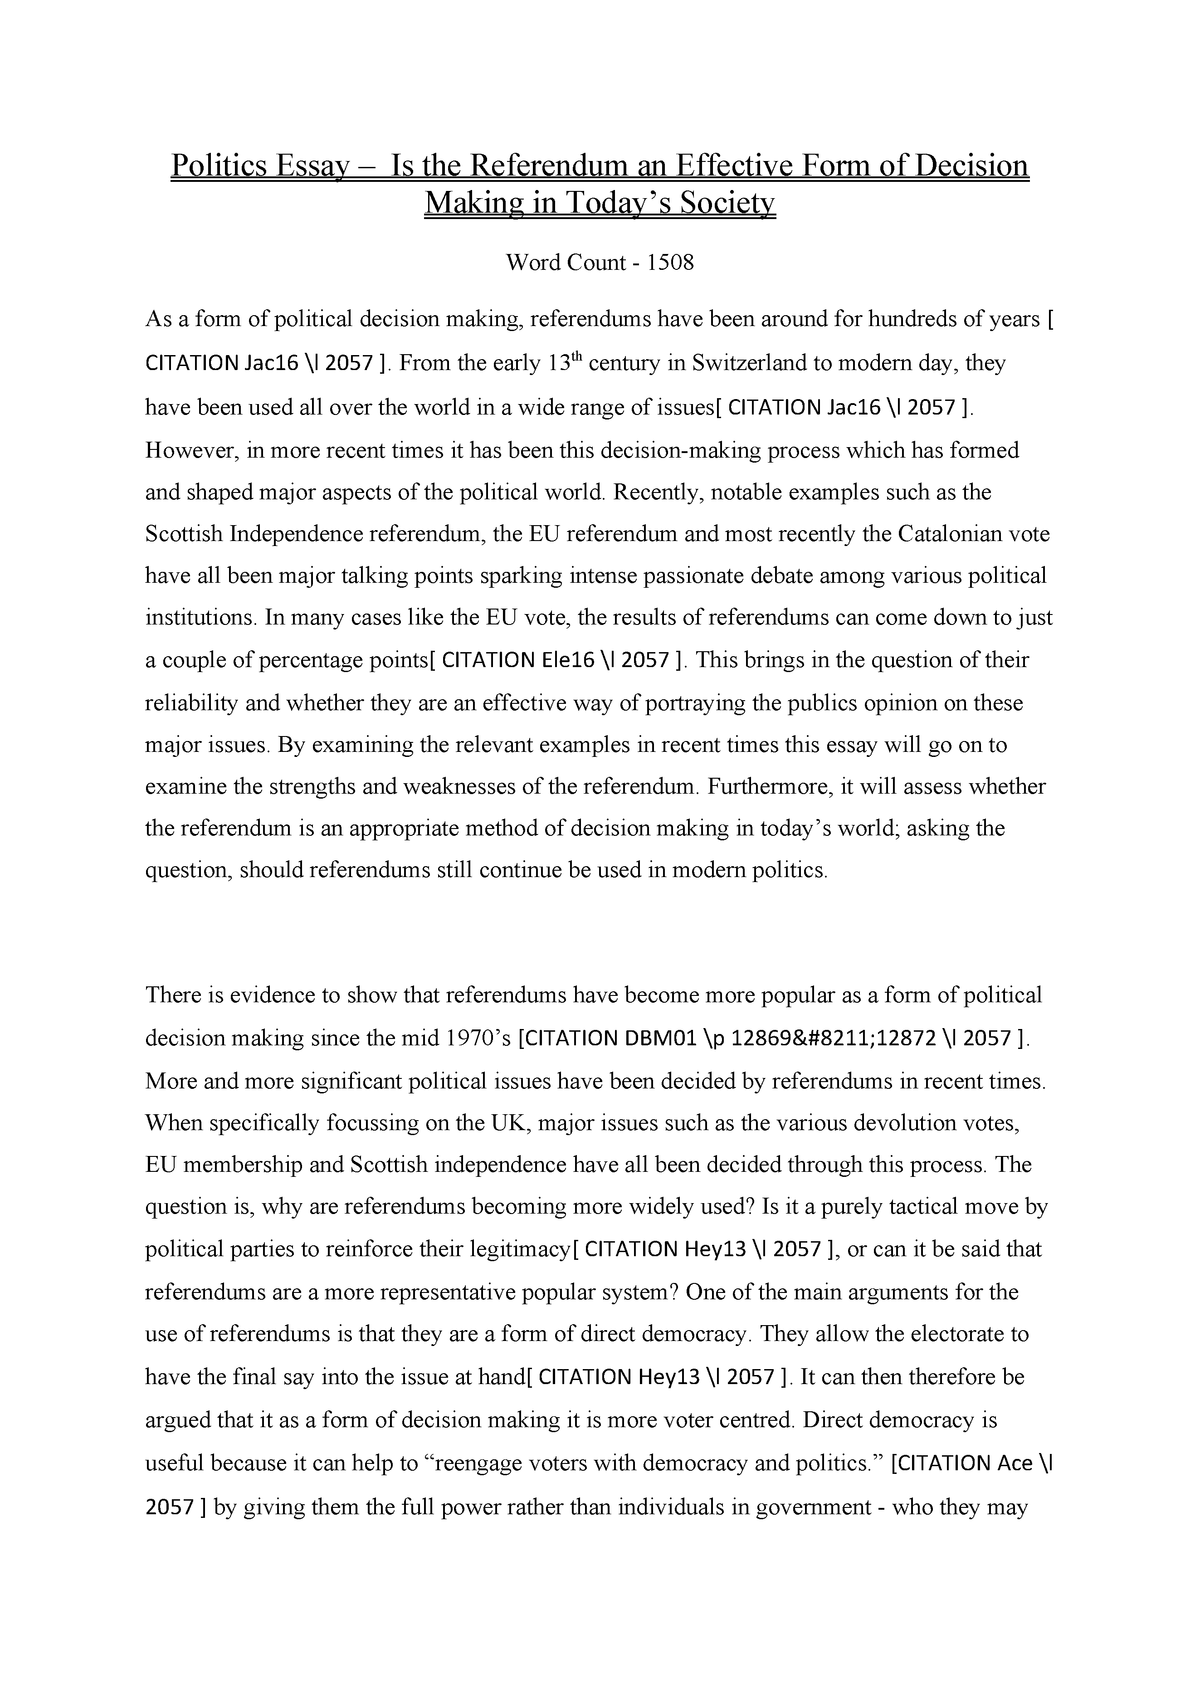 I need help with a thesis